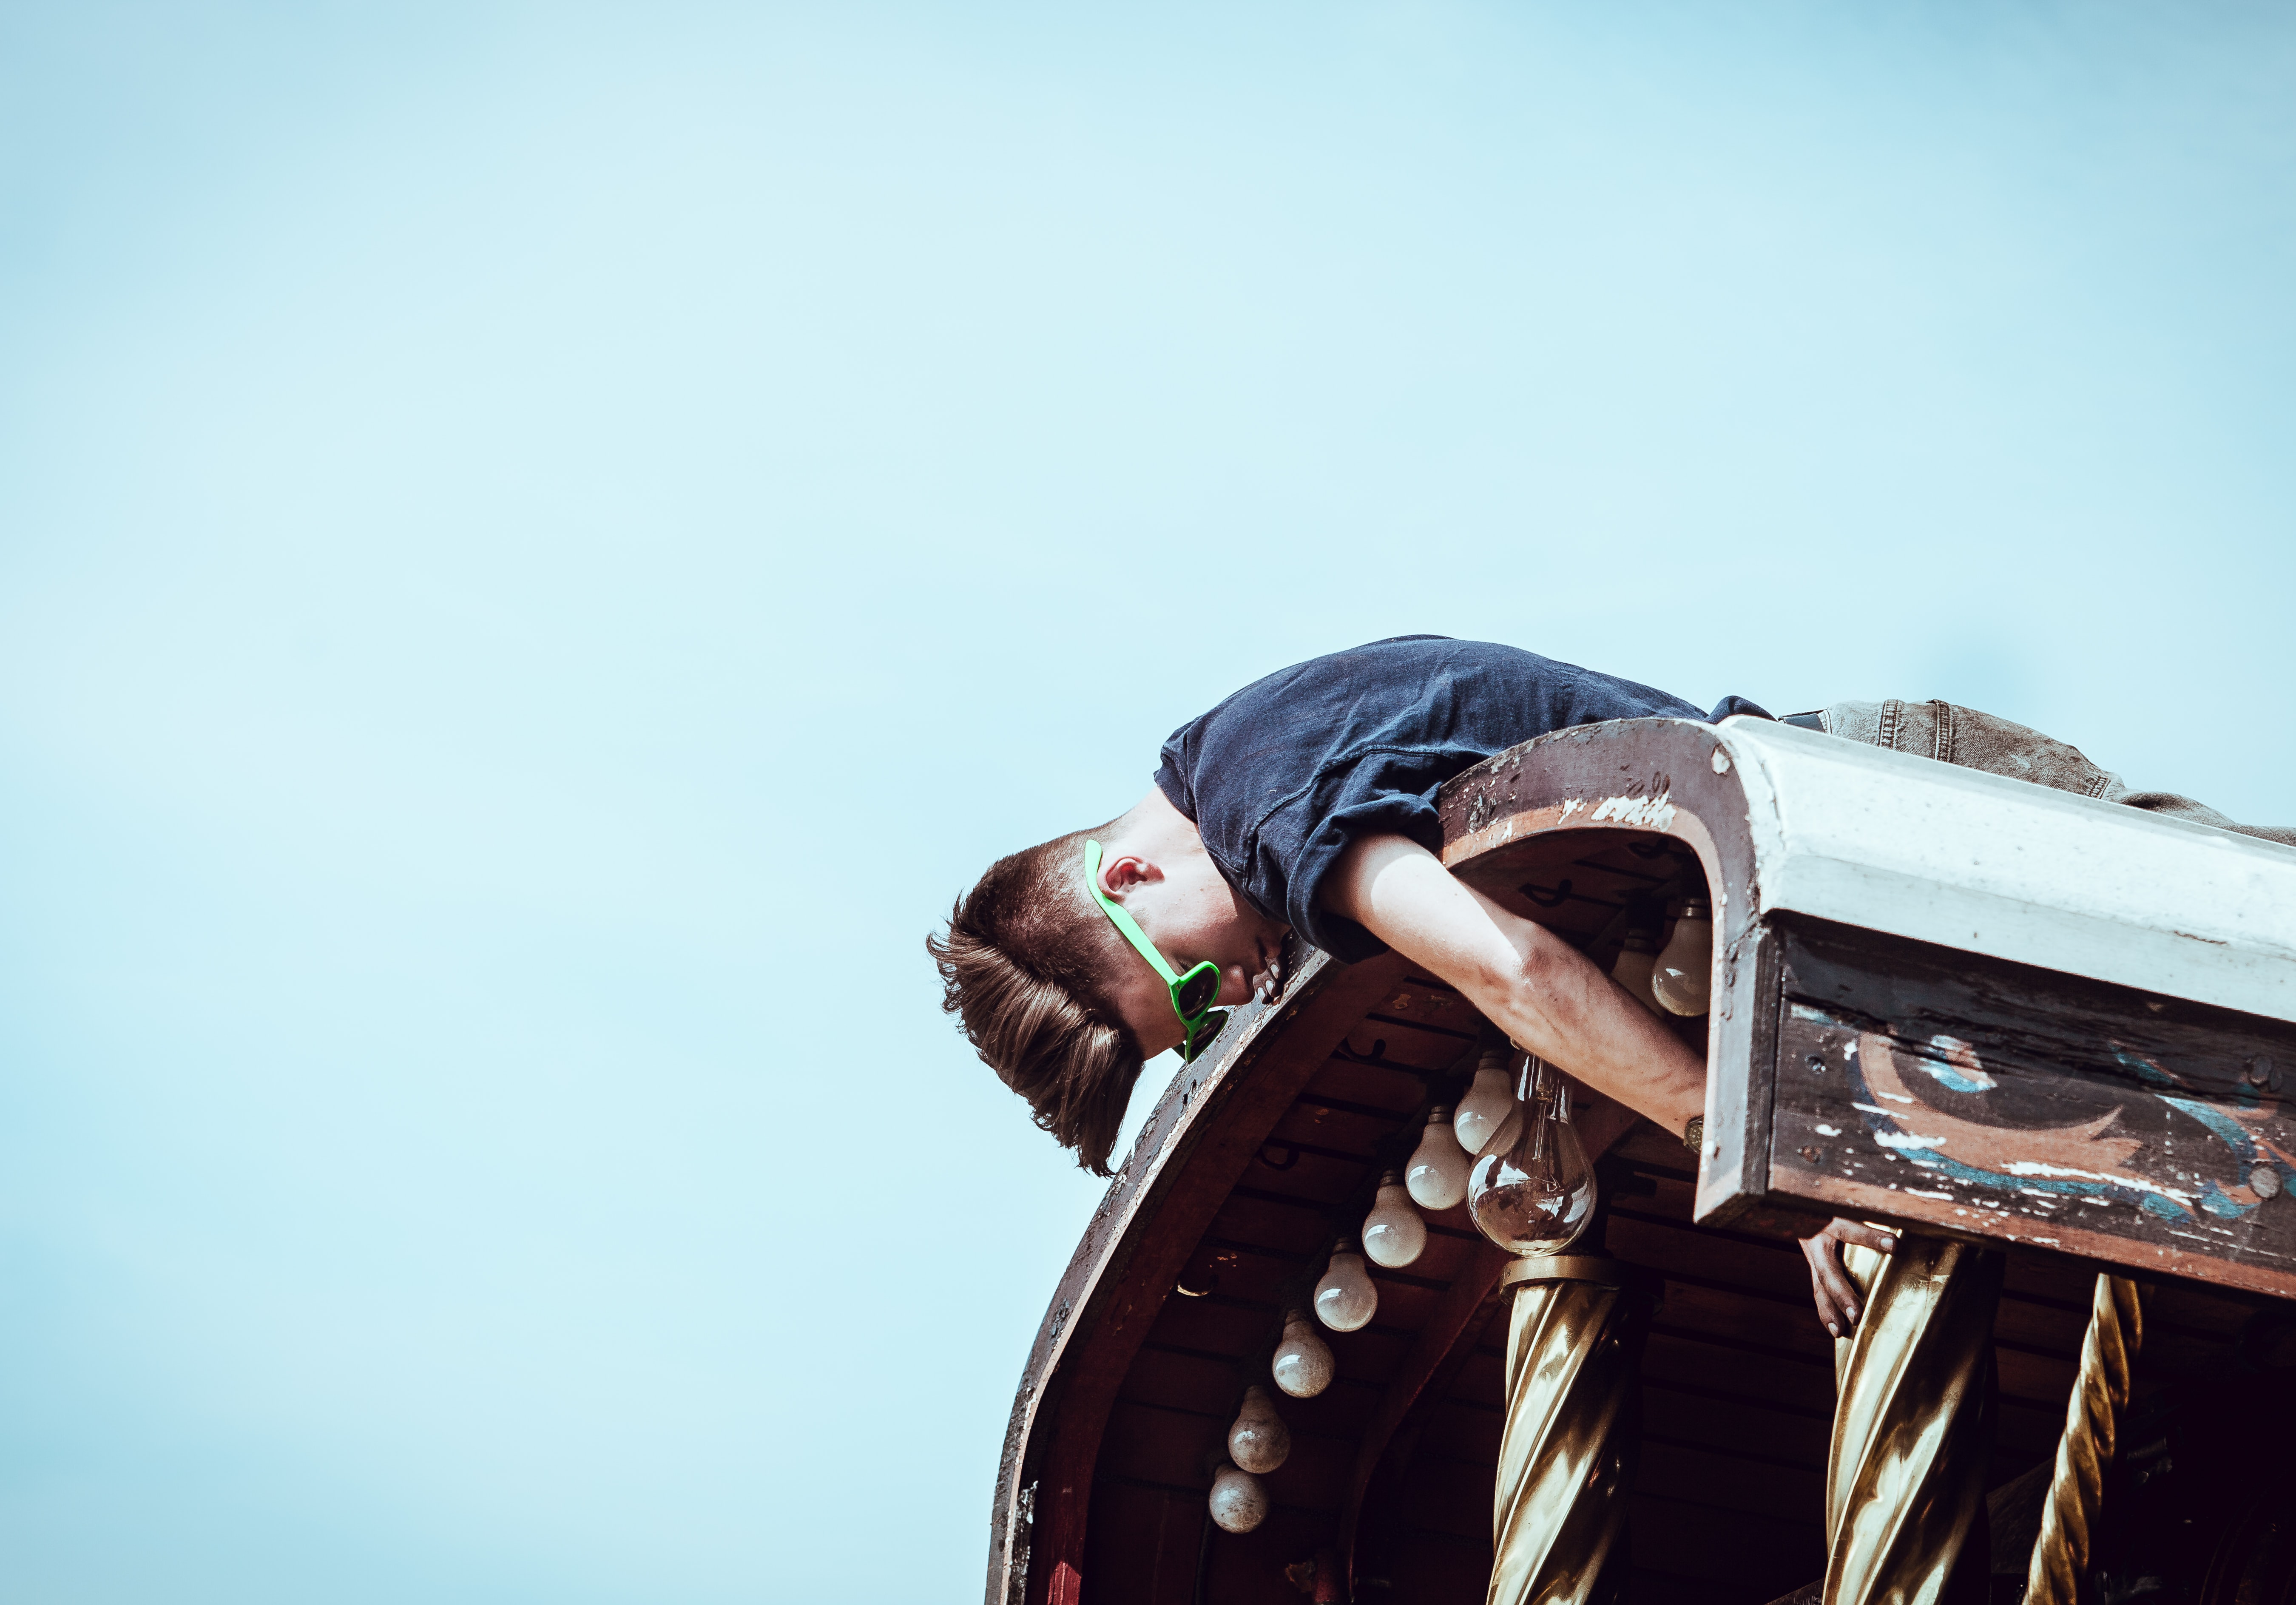 A person lays atop a structure, reaching down to repair lightbulbs against a blue sky